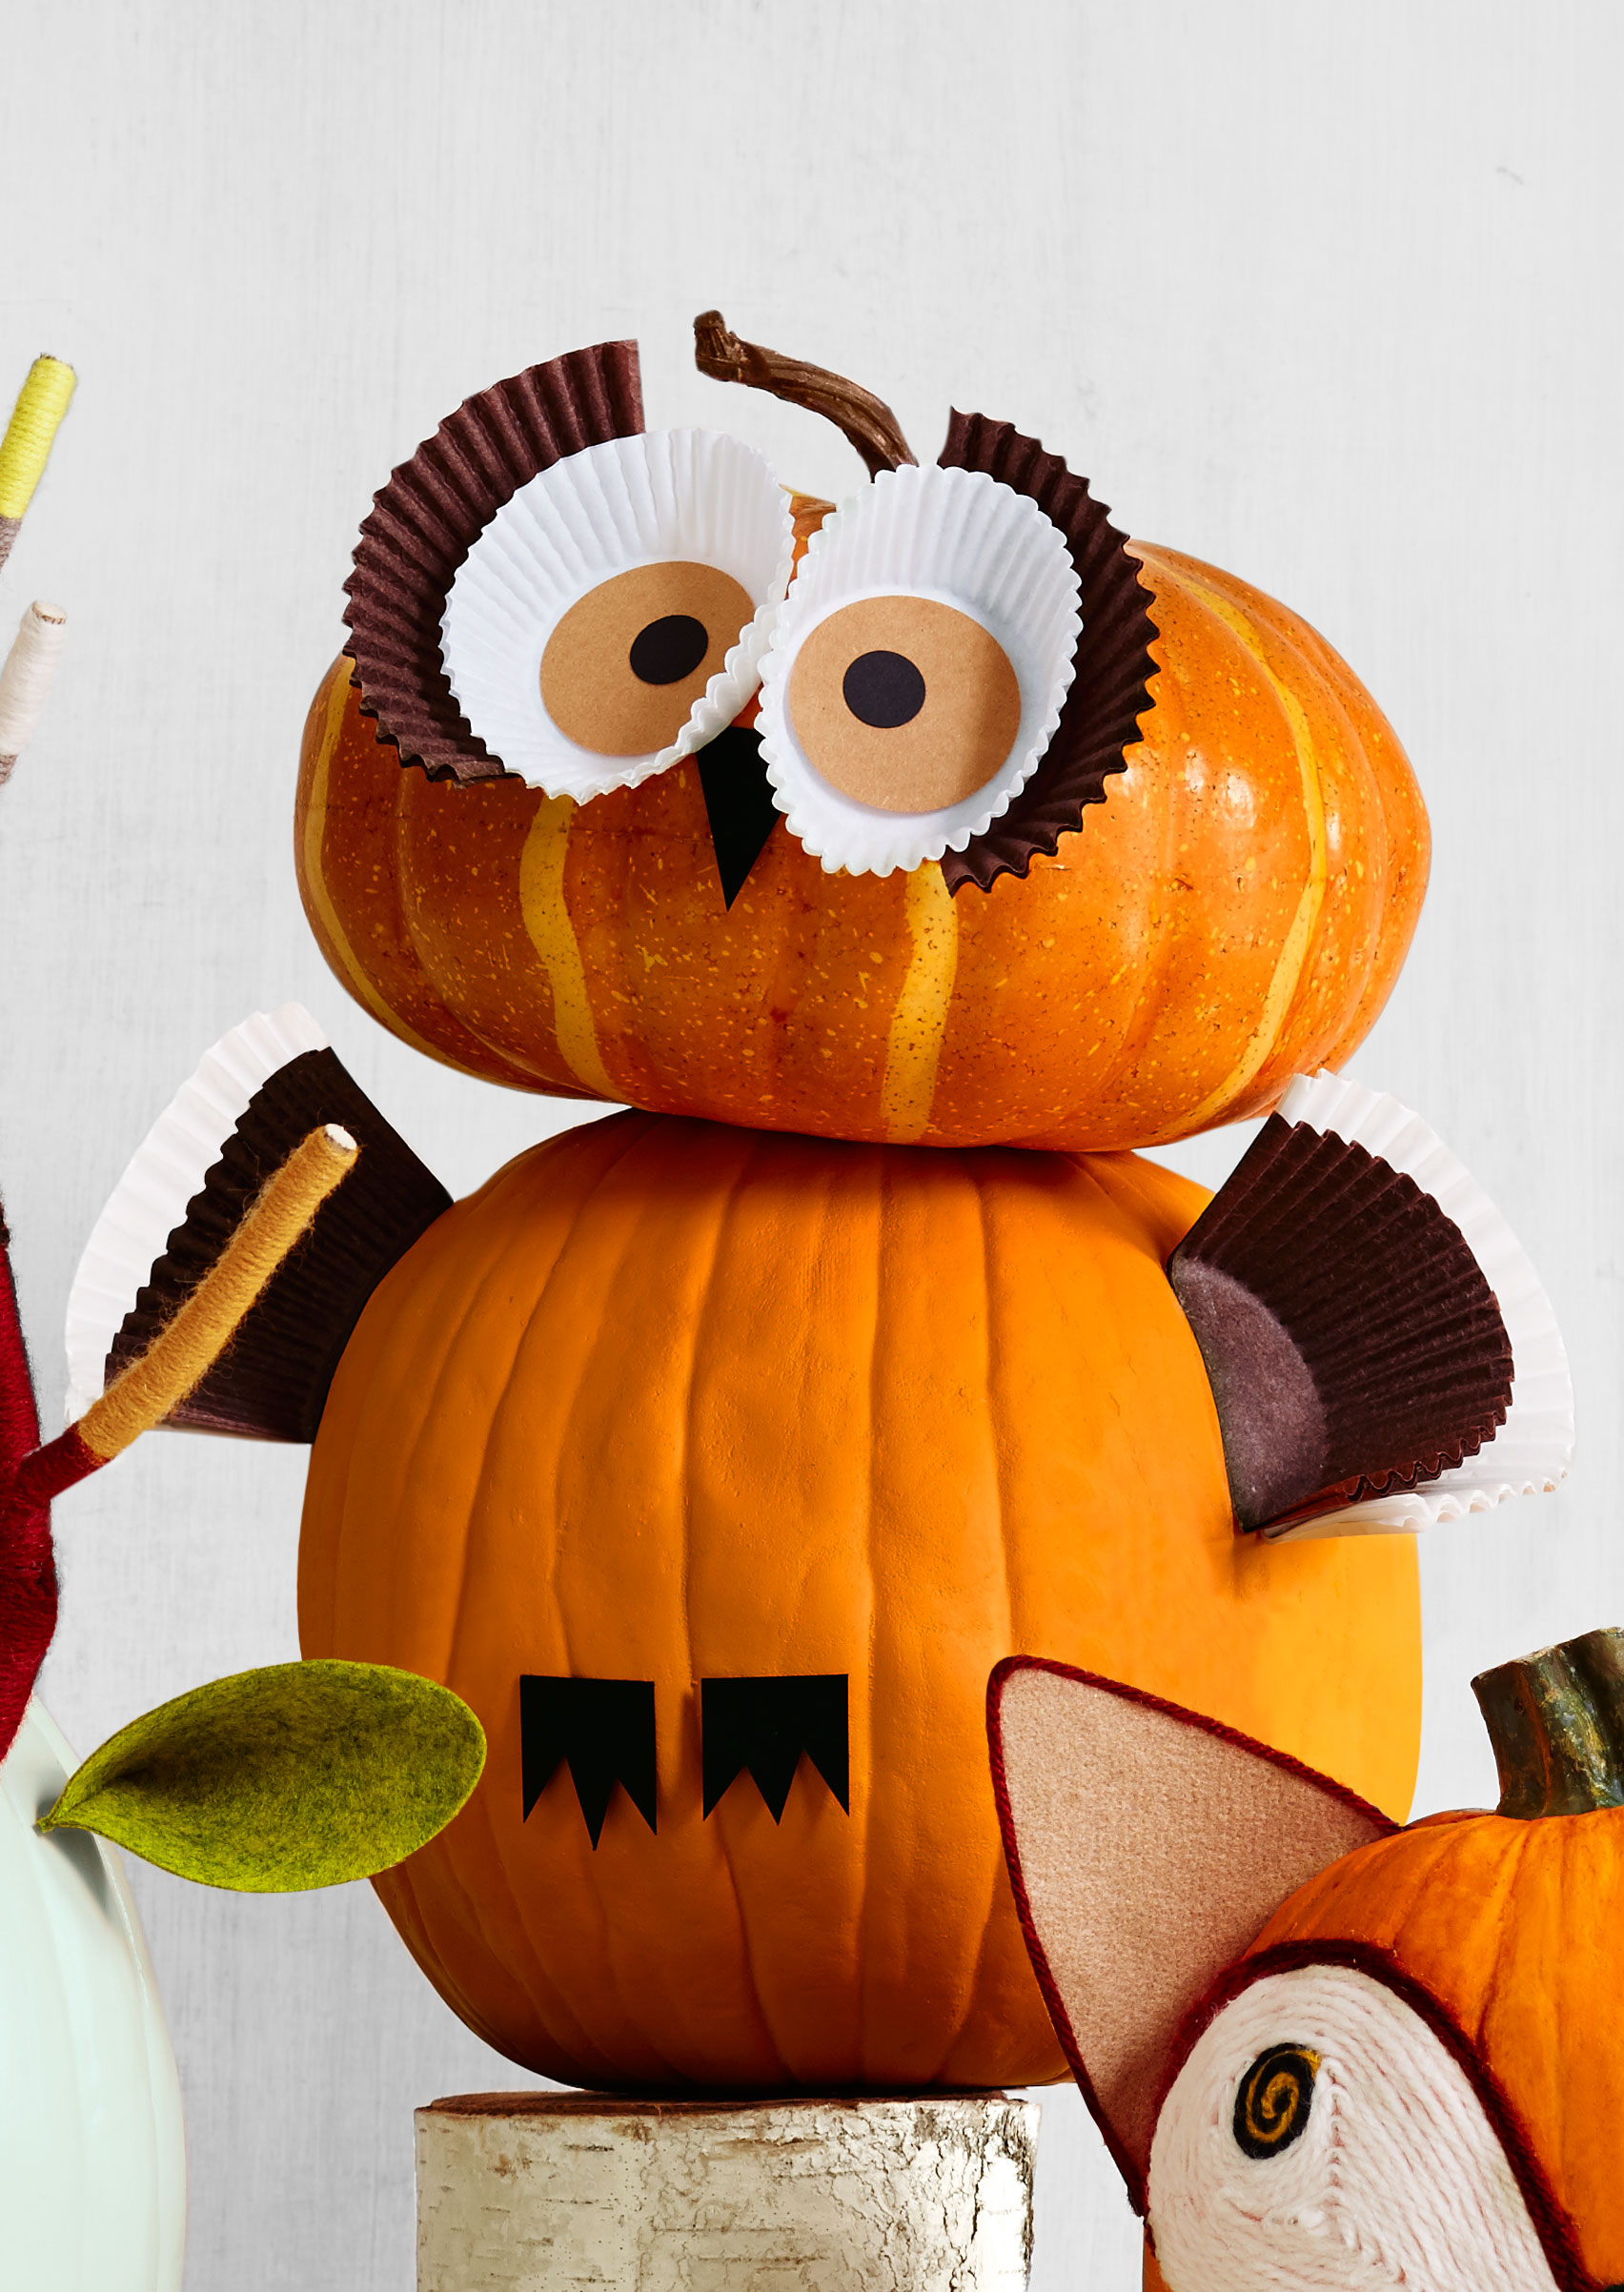 83 Cool Pumpkin Decorating Ideas - Easy Halloween Pumpkin ...